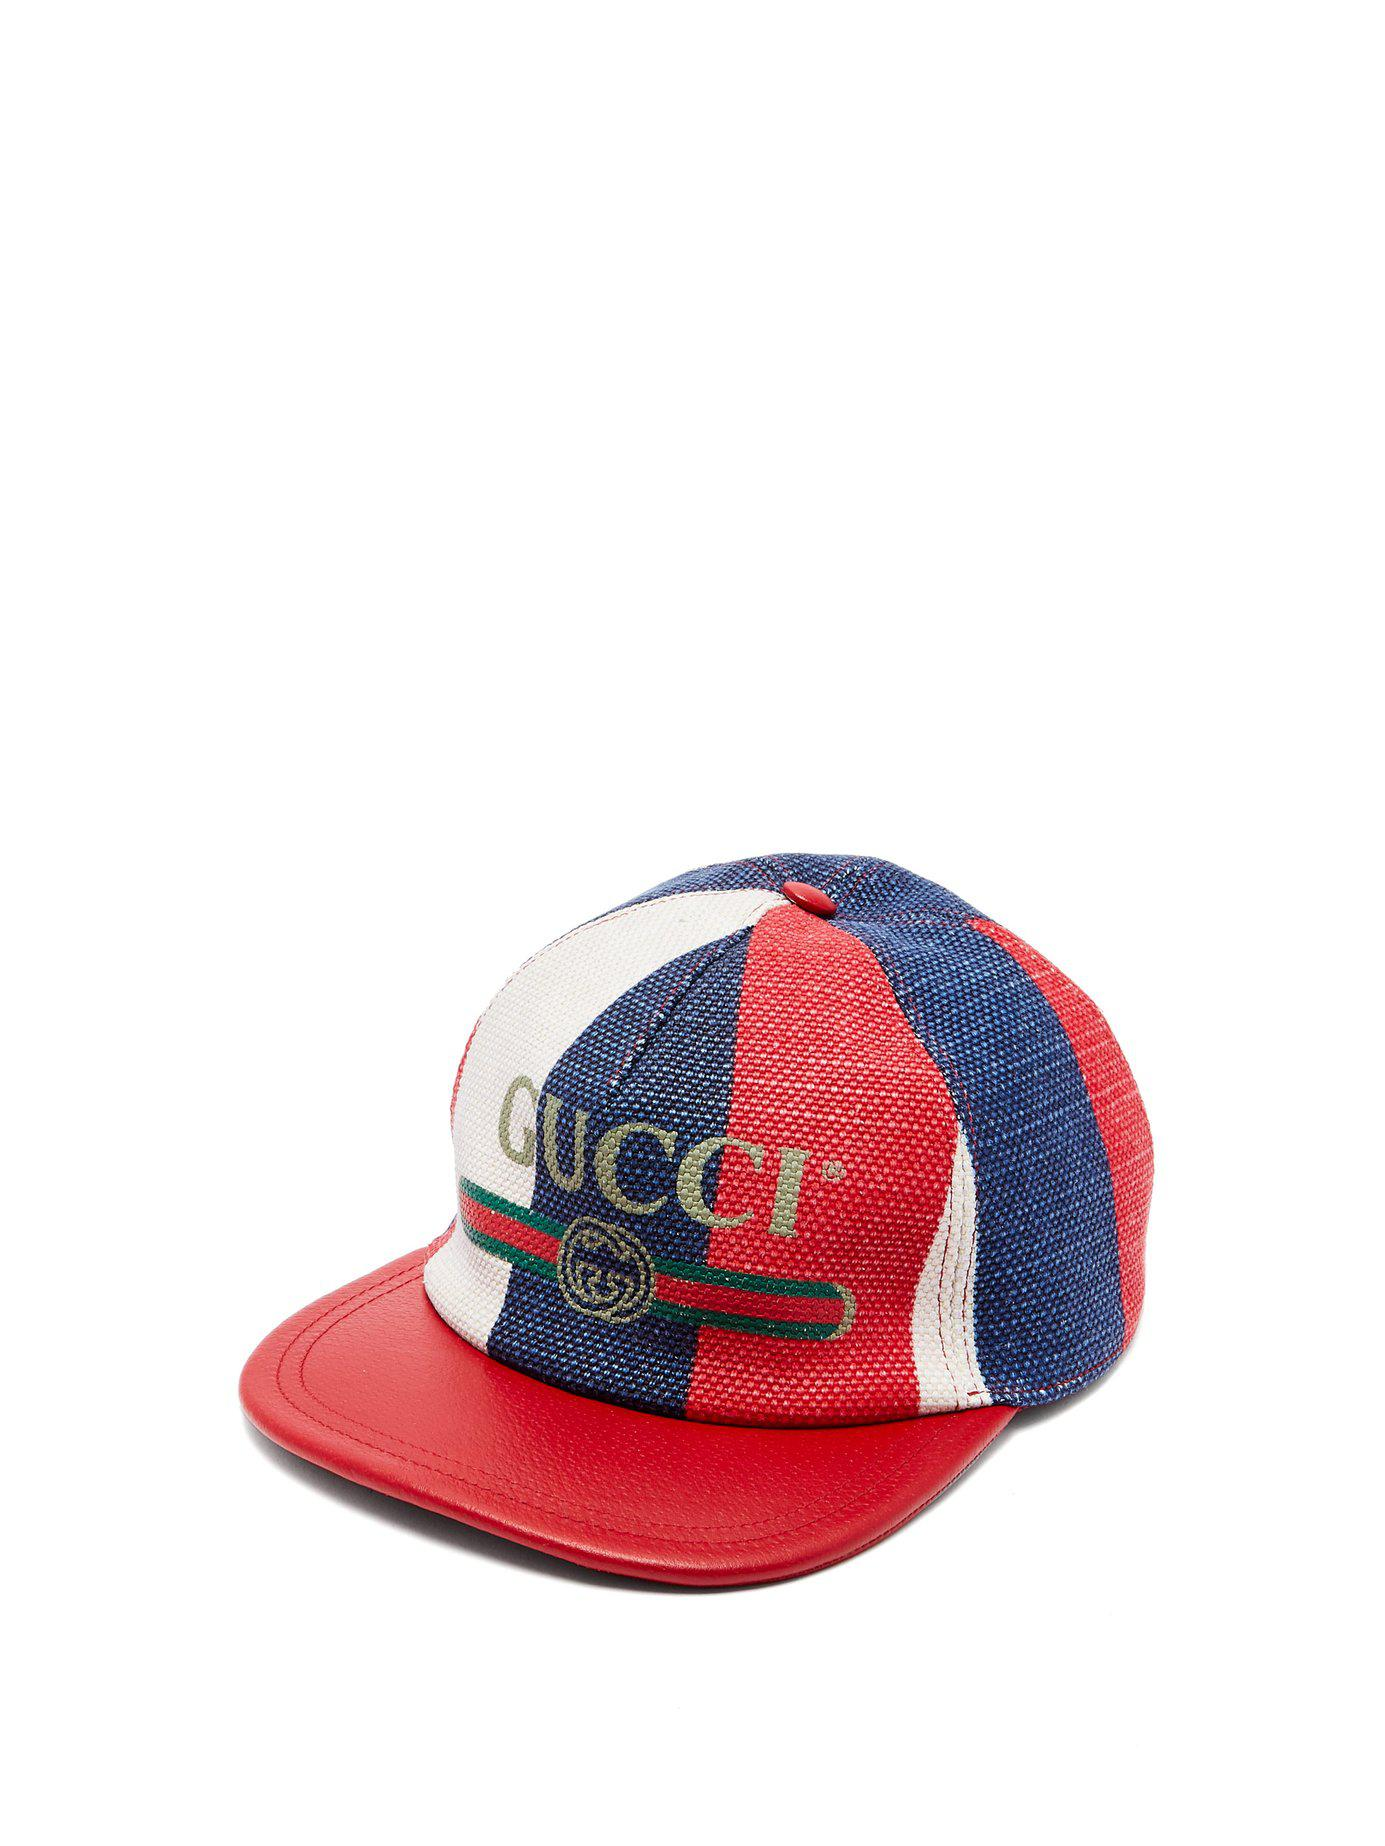 Gucci - Multicolor Logo Embellished Linen Baseball Cap for Men - Lyst. View  fullscreen 084f9aae47db